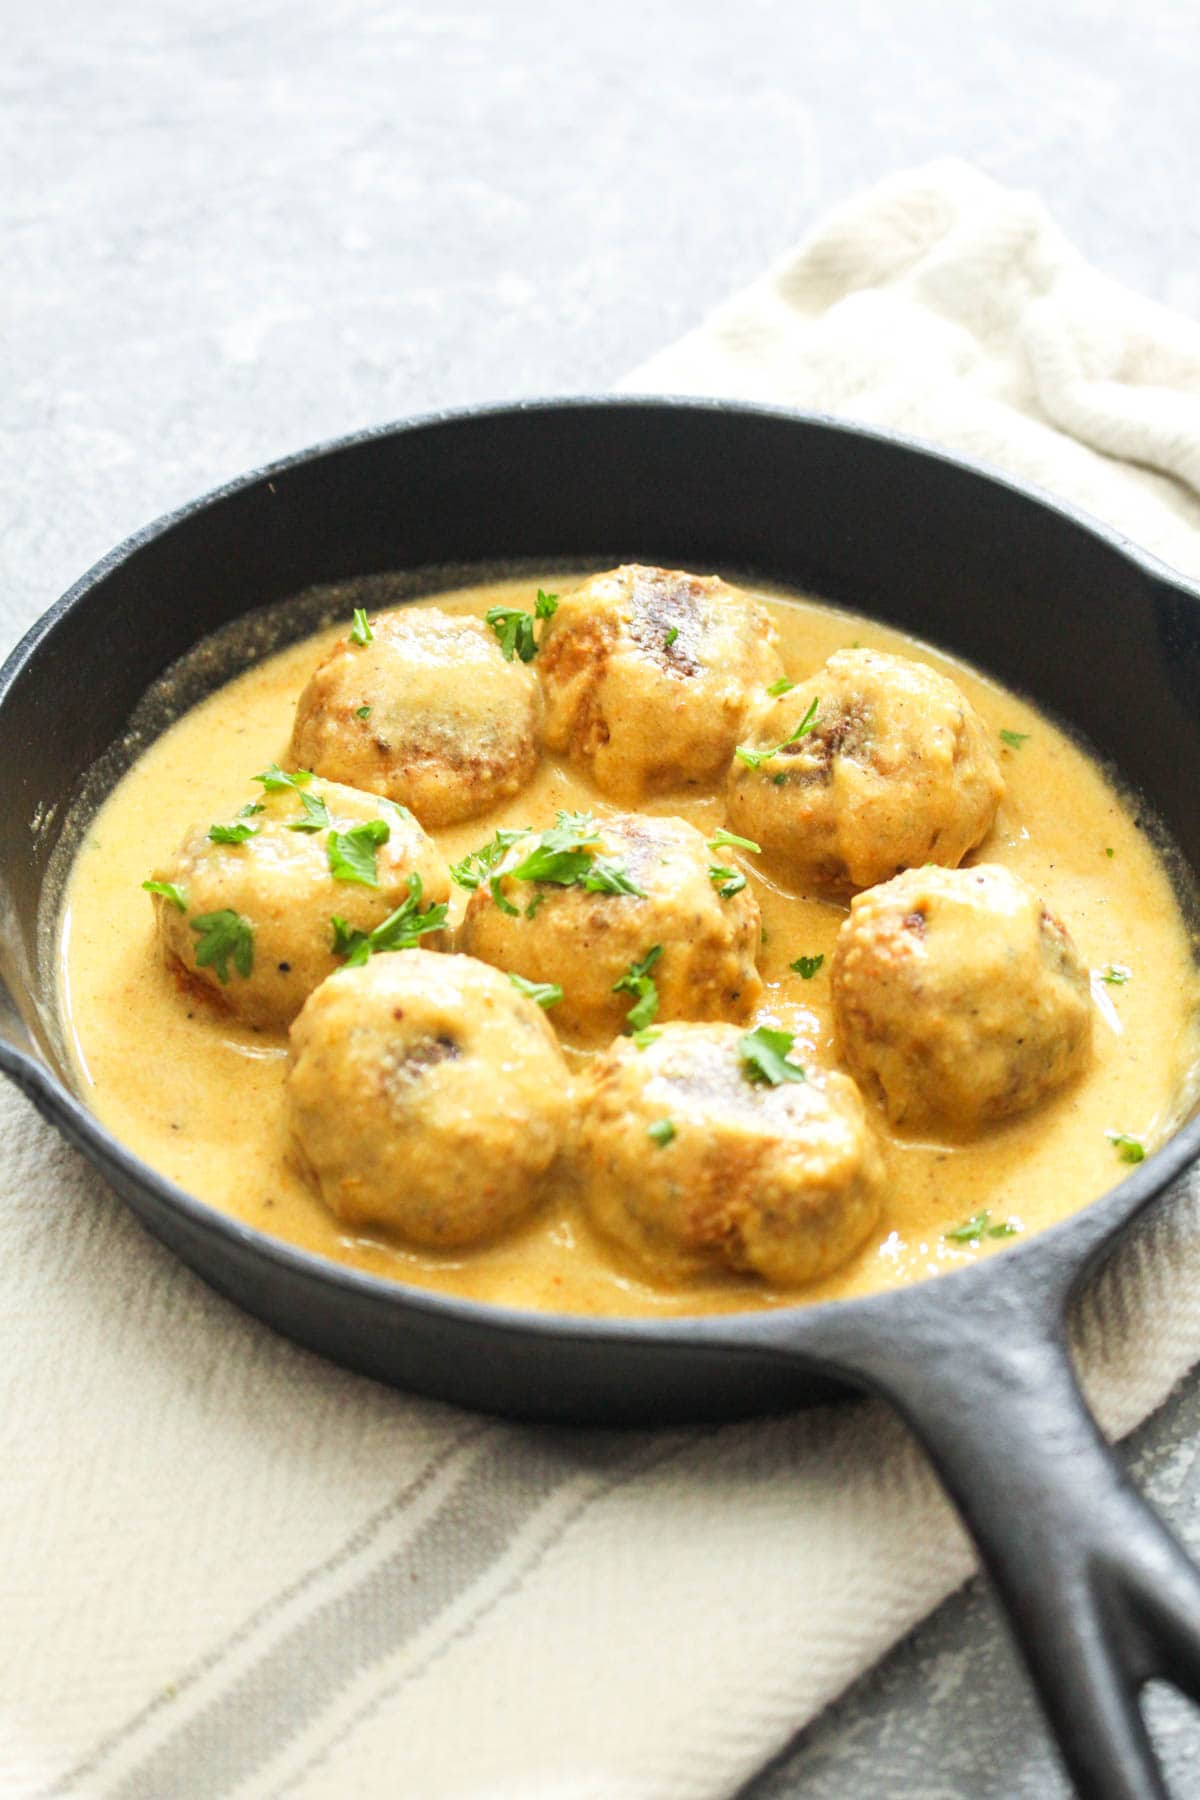 Low FODMAP Adobo Tempeh Meatballs with Chipotle Cream Sauce are a flavor packed gluten-free and vegan recipe! Flavor baked meatballs are combined with a luscious cream sauce for one flavor packed healthy meal. Serve it over rice or veggies for a complete dinner! | CatchingSeeds.com